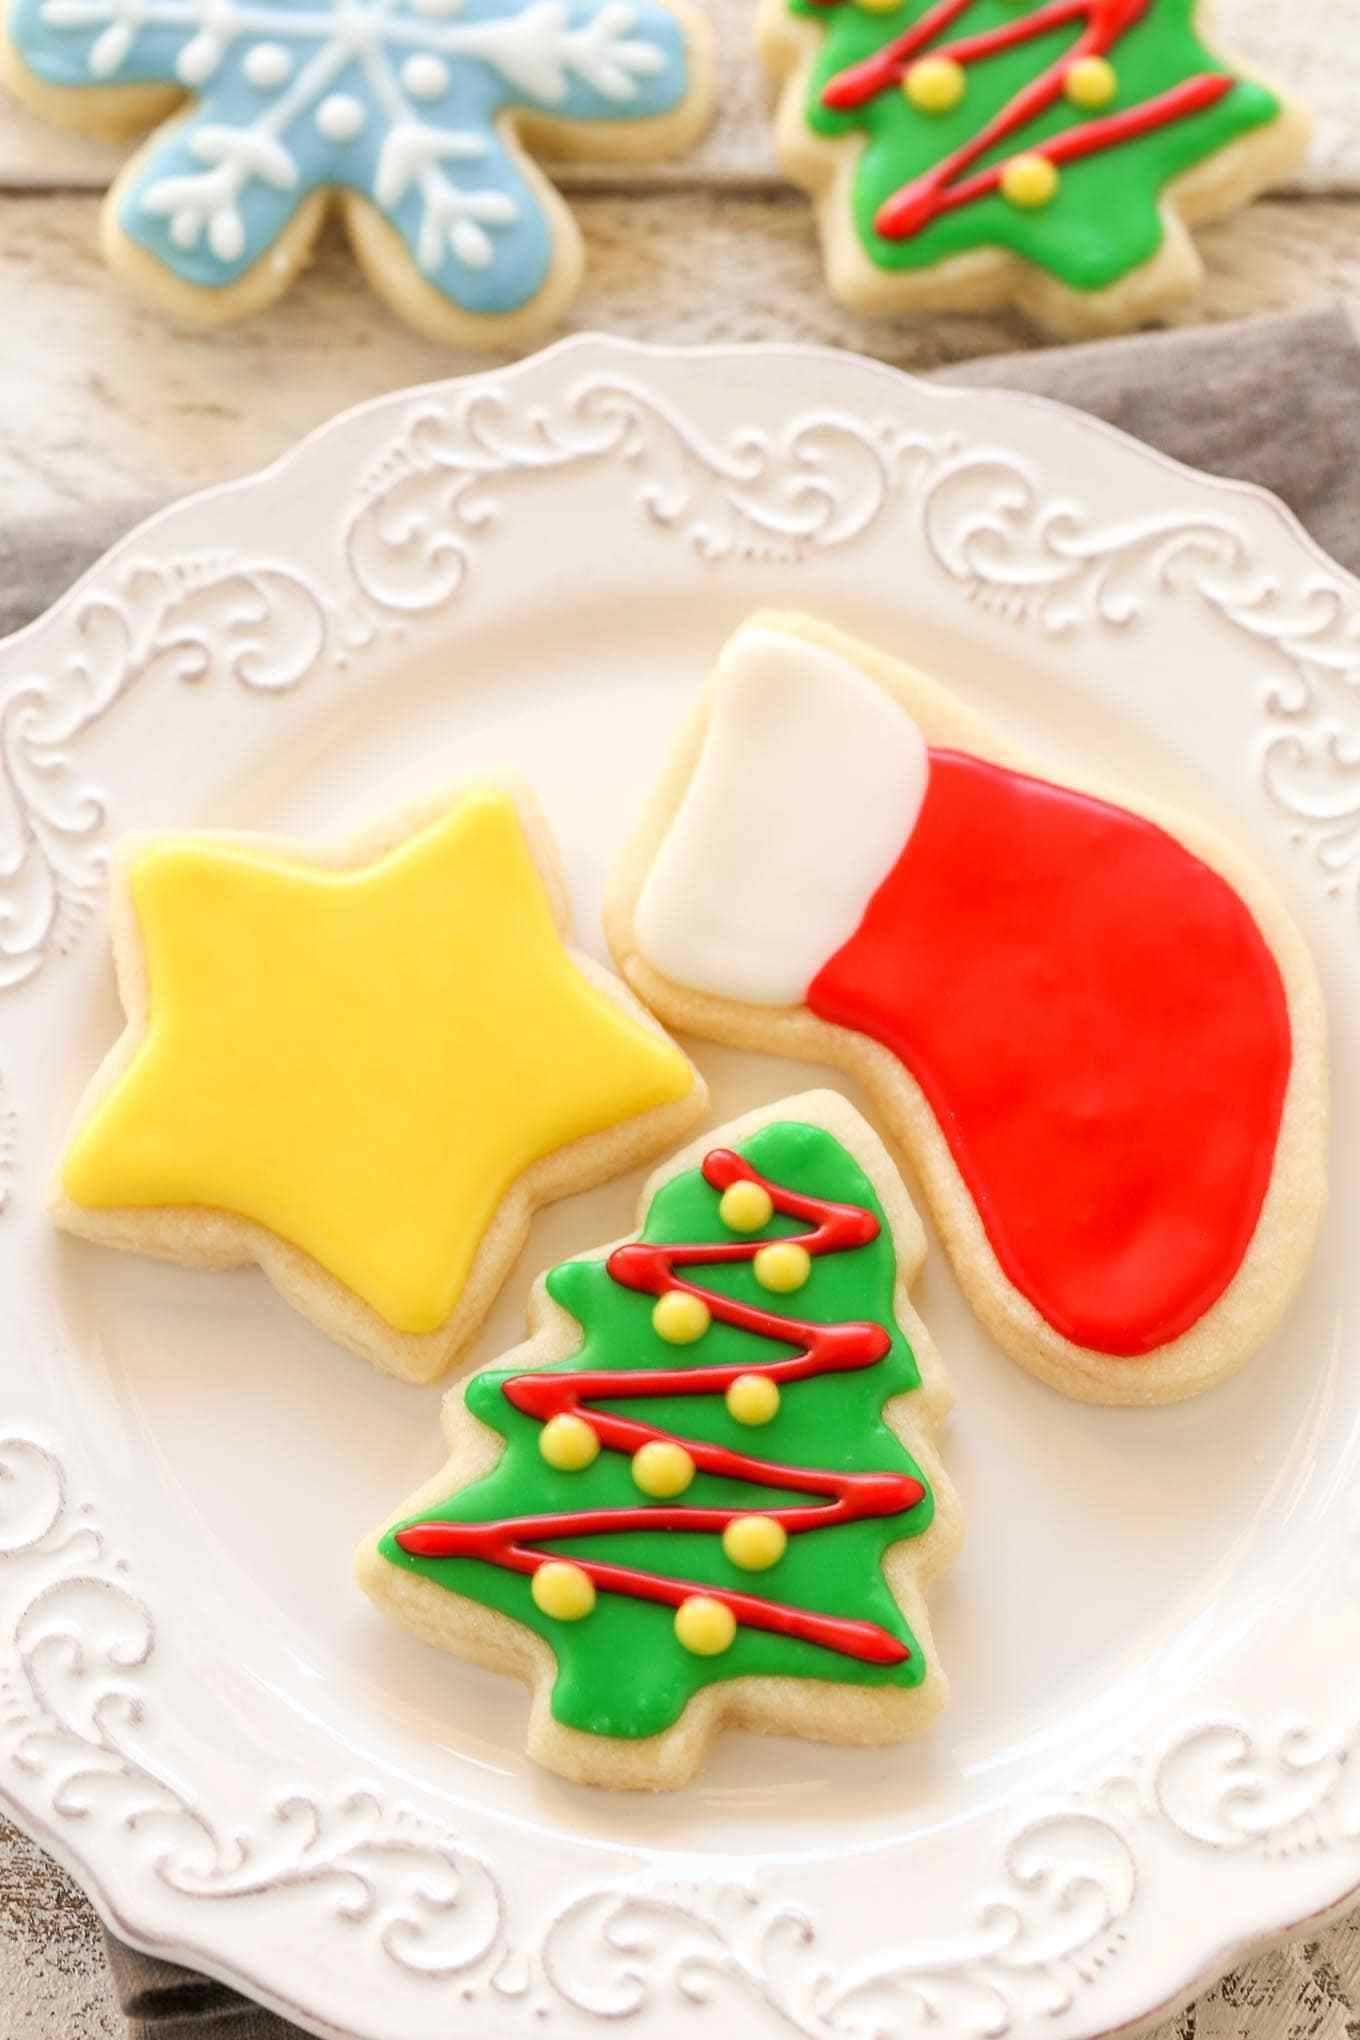 Christmas Sugar Cookies With Icing  Soft Christmas Cut Out Sugar Cookies Live Well Bake ten